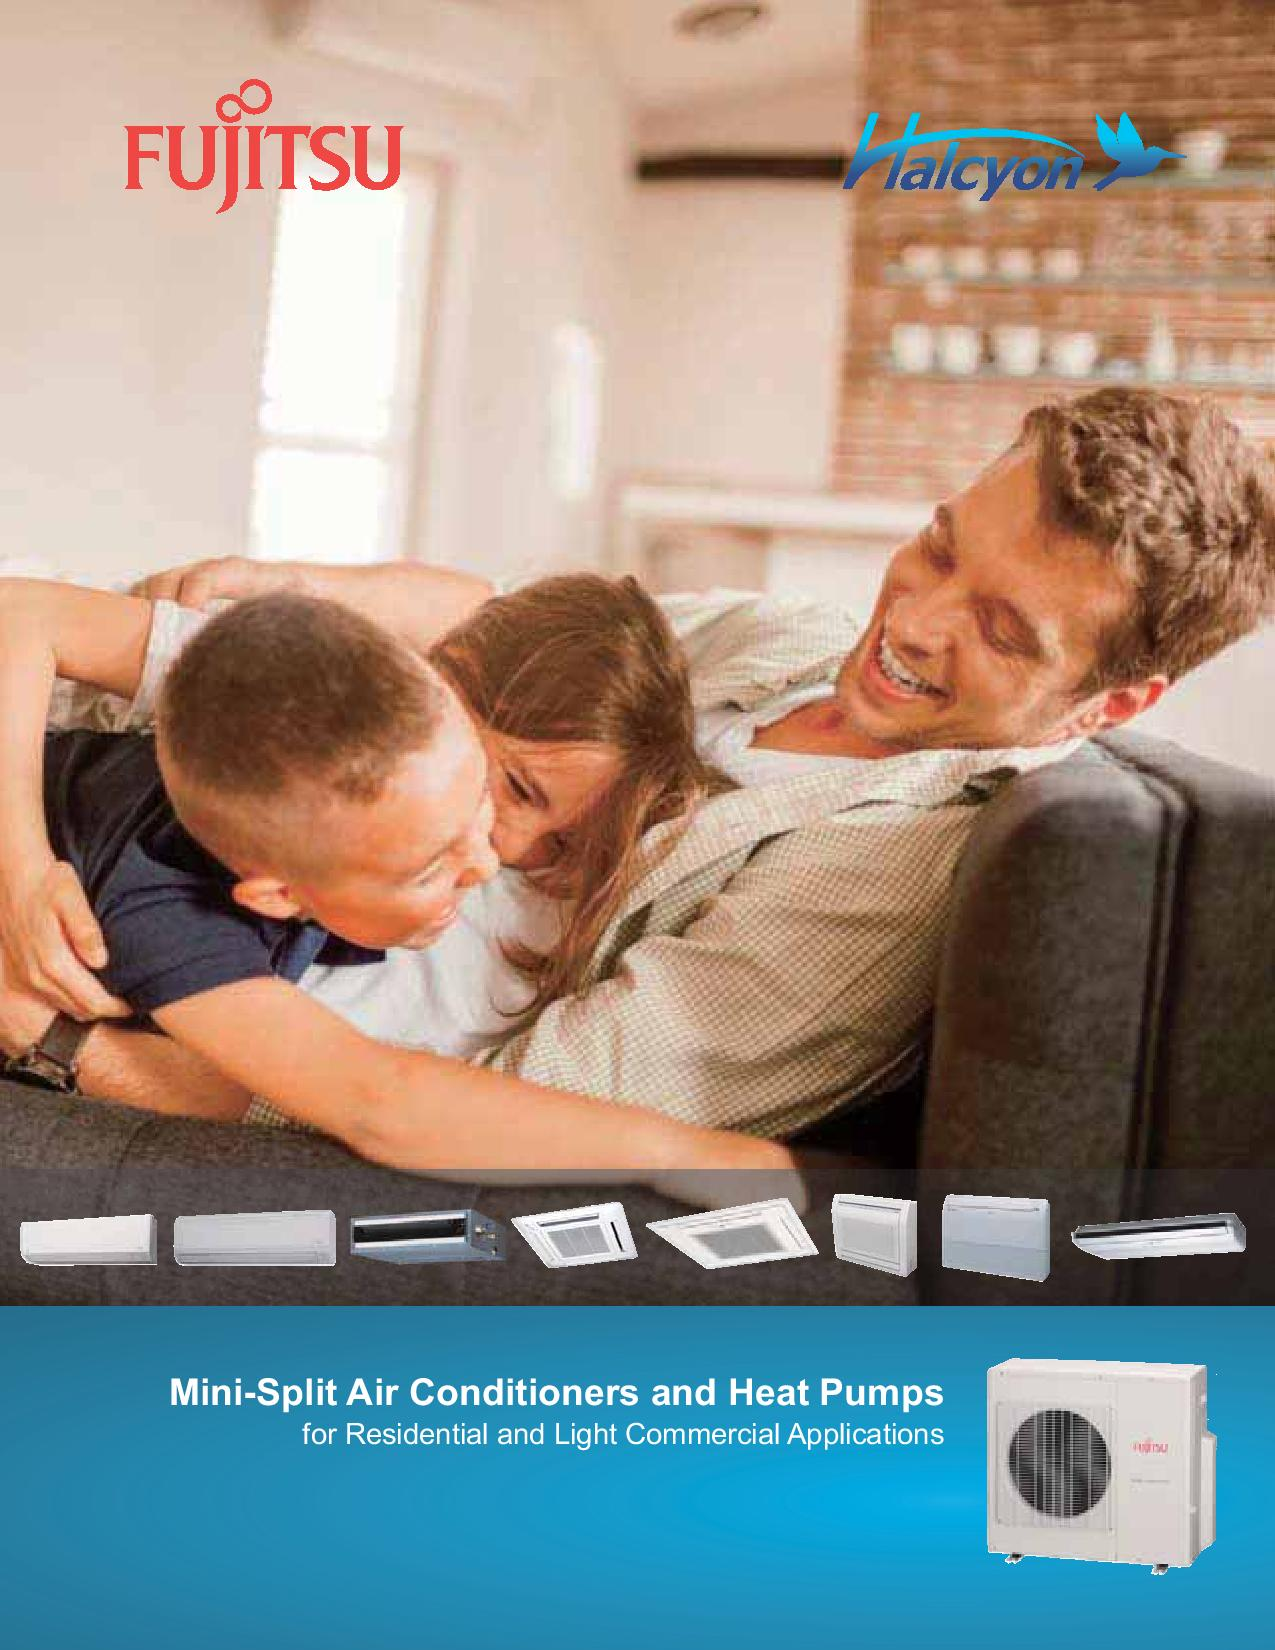 See what makes (Mftr.) Fujitsu your number one choice for Heat Pump repair in Herndon VA.